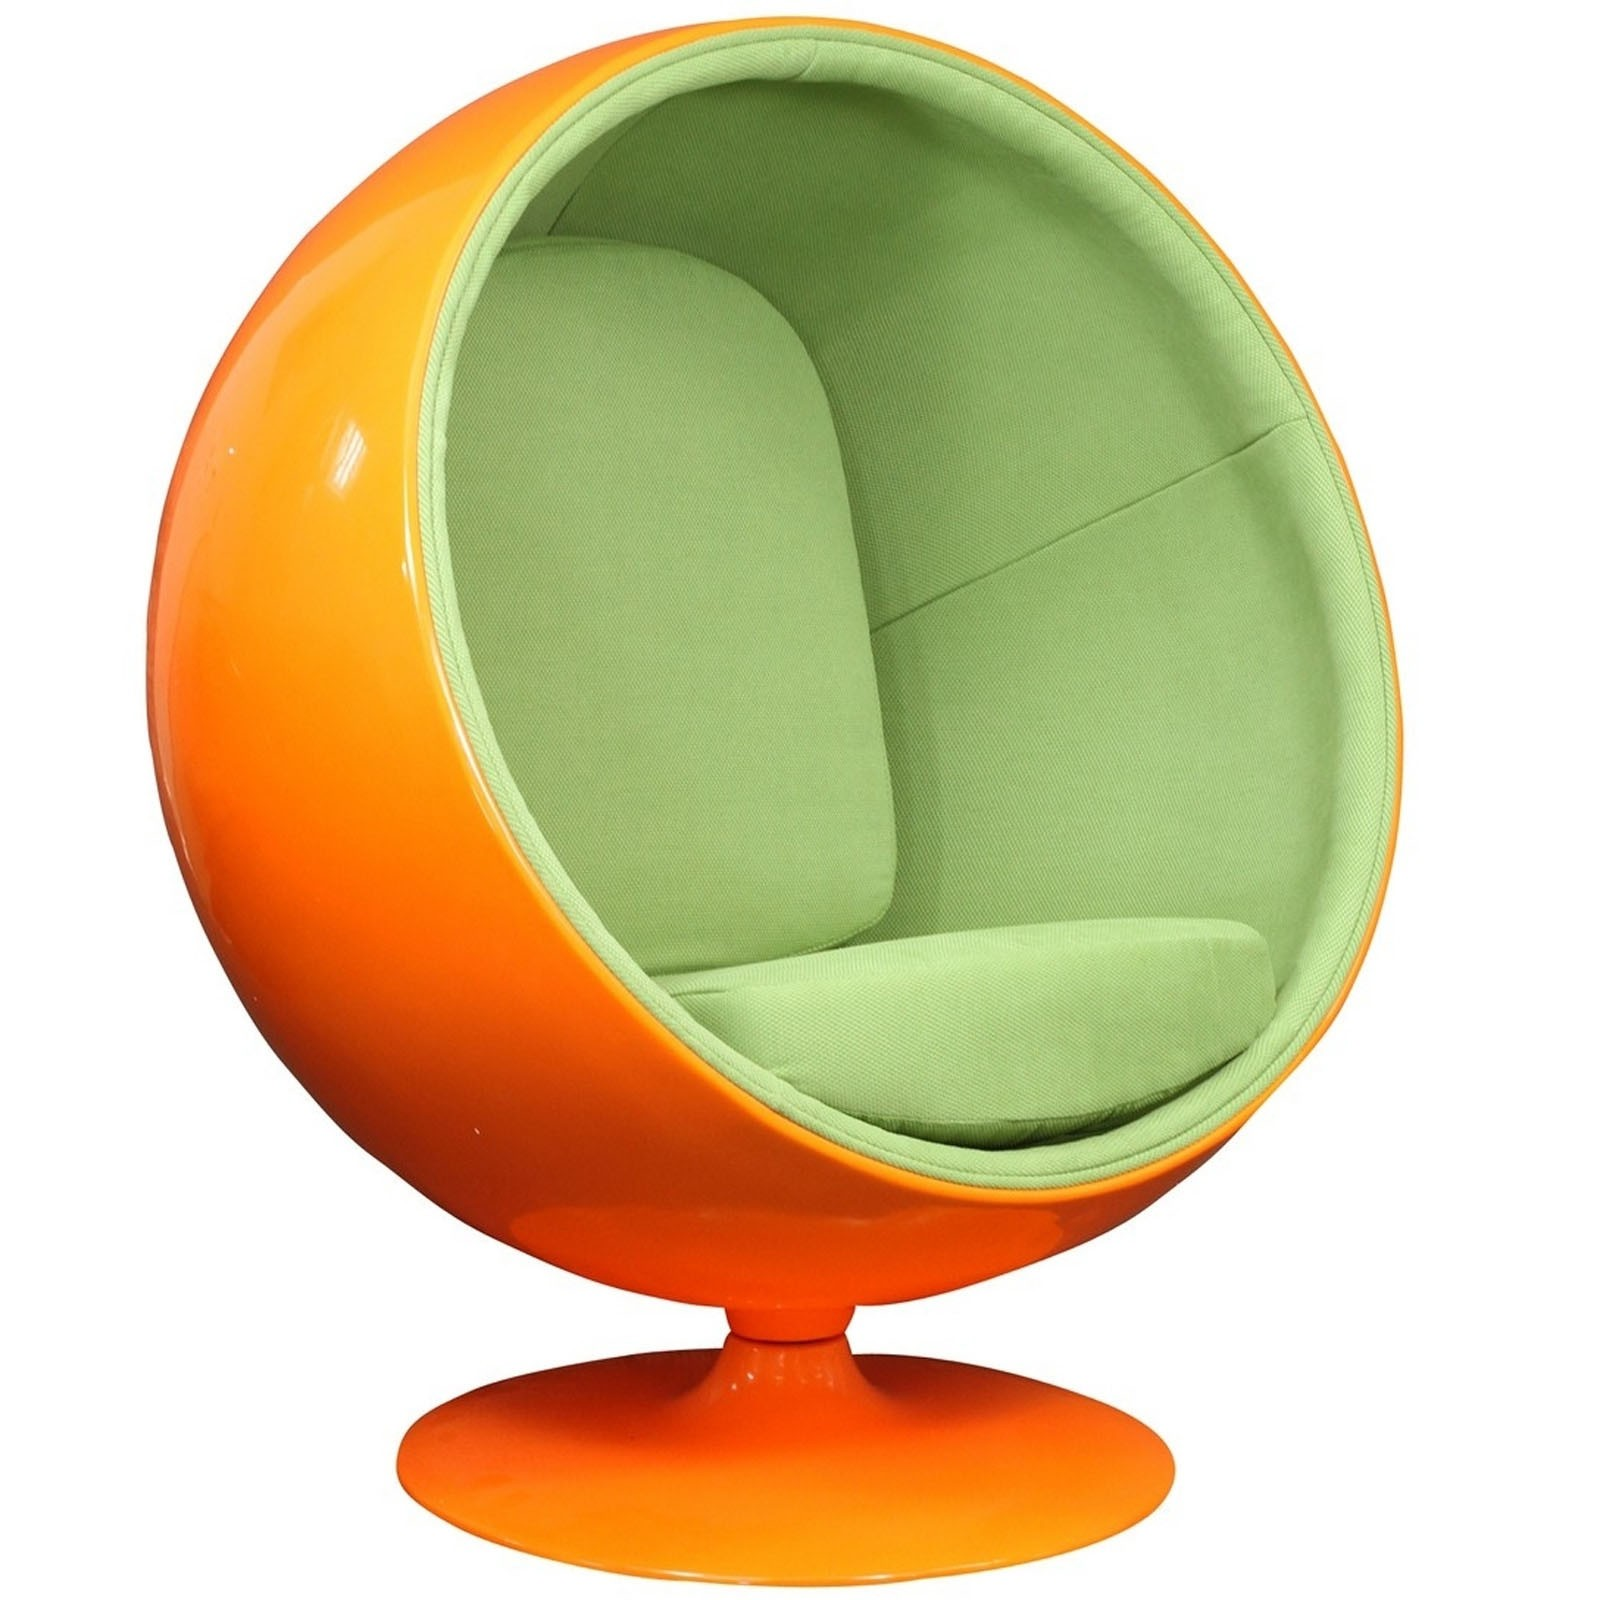 Kaddur Lounge Chair - Orange Green